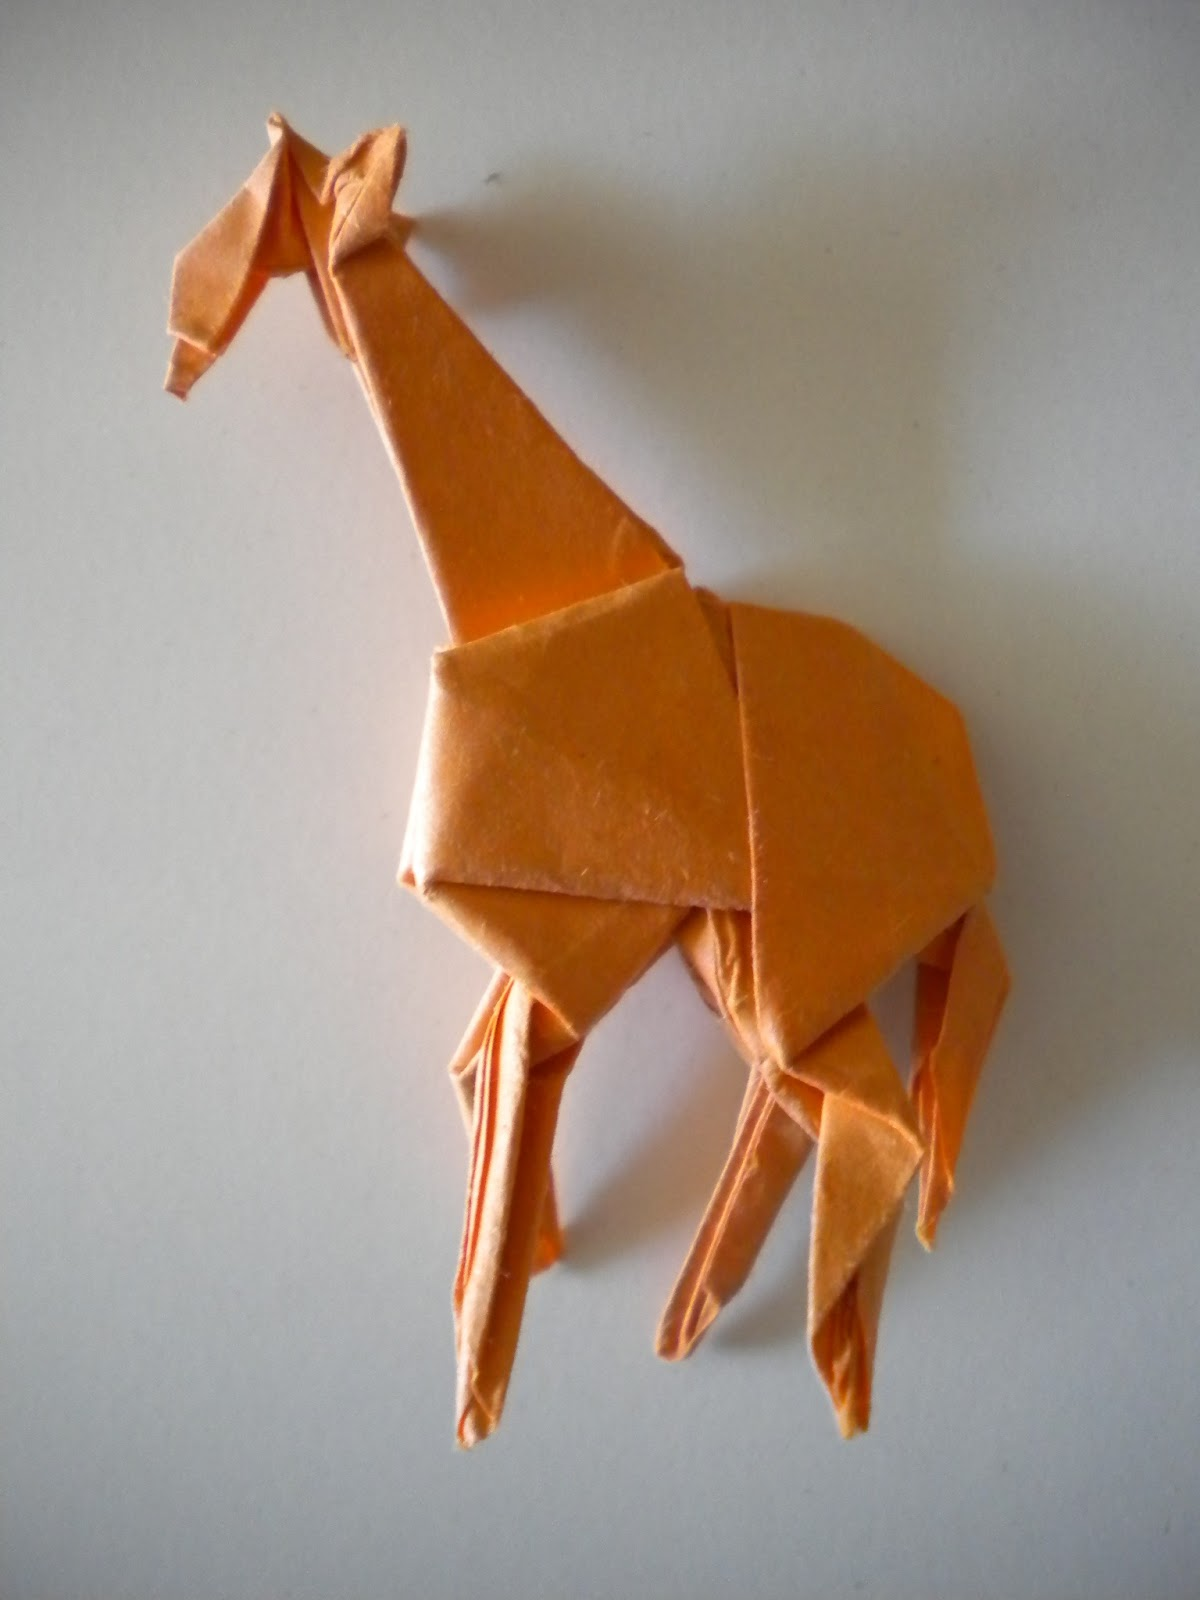 Curious Charisma Origami Giraffe Diagram This Armadillo Was Quite Enjoyable To Make From The Large Opened Ears Pleated Body Armour Folds I Believe Is First Model Ive Folded By